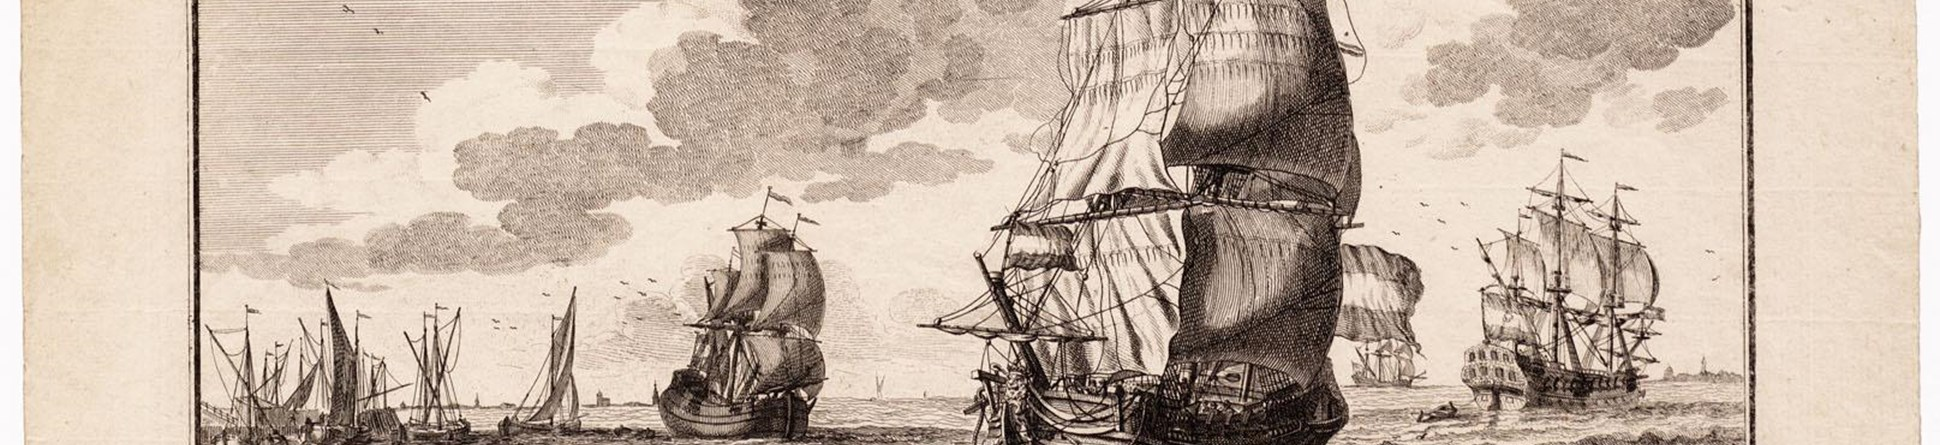 A drawing of a ship similar to the Rooswijk – a Dutch 'hekboot', by Adolf van der Laan in 1716.